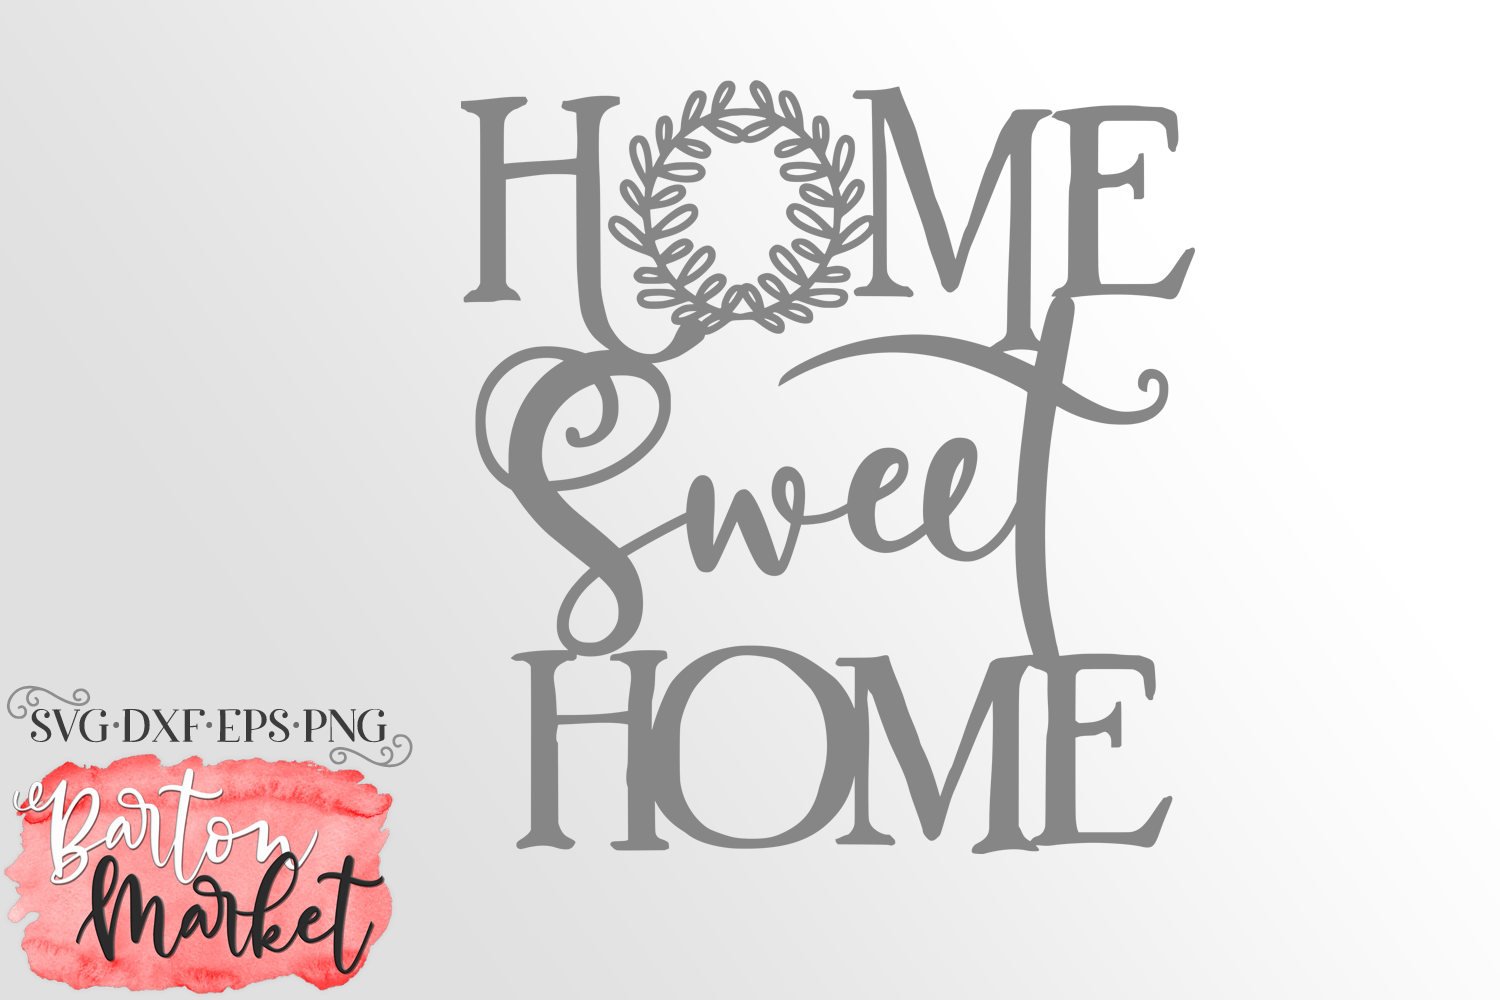 Home Sweet Home SVG DXF EPS PNG example image 4